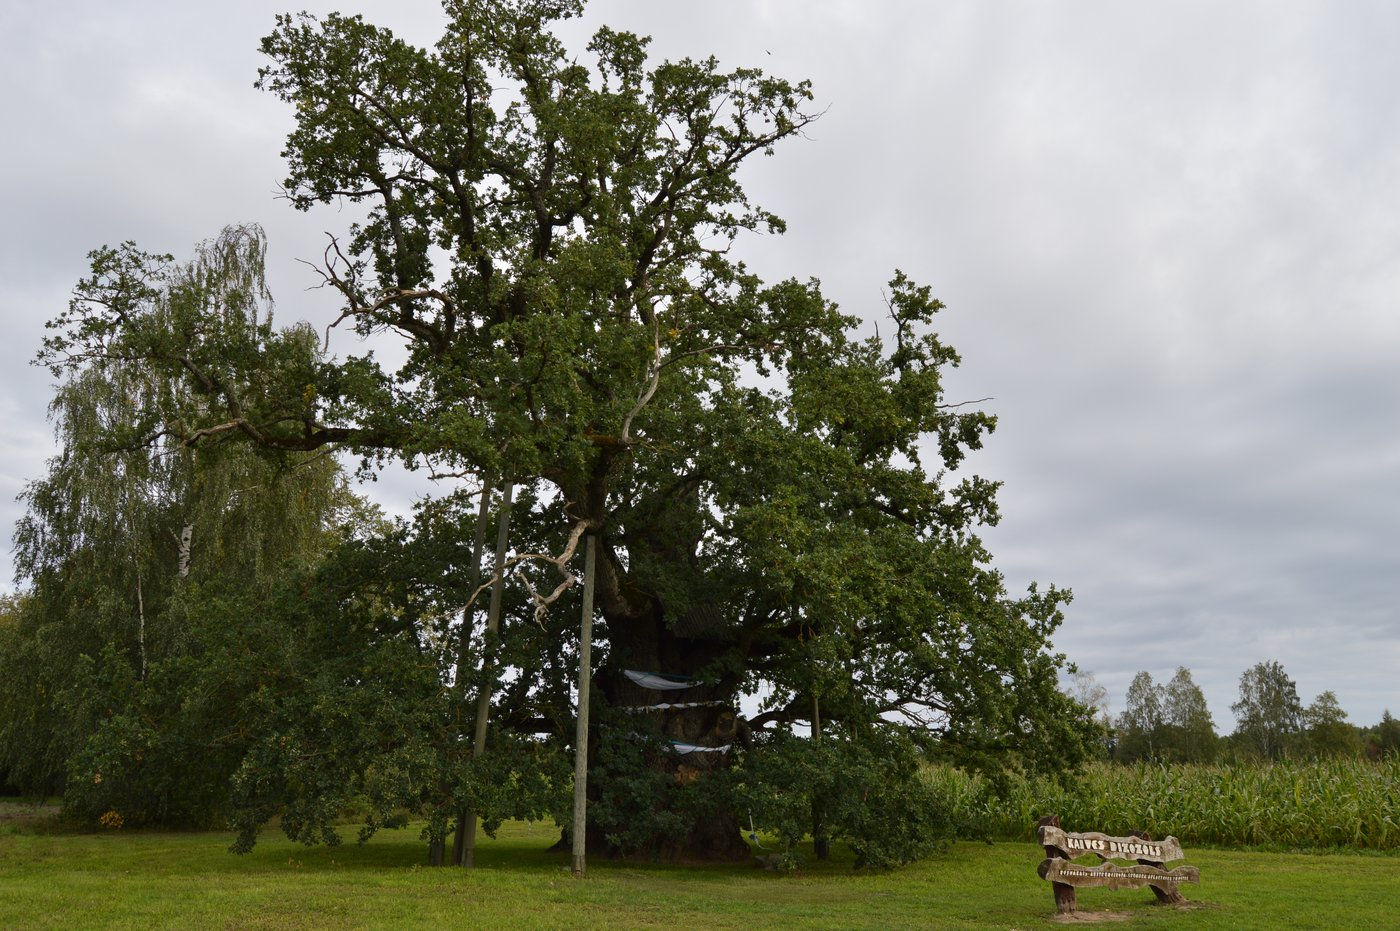 thousand-year-old oak